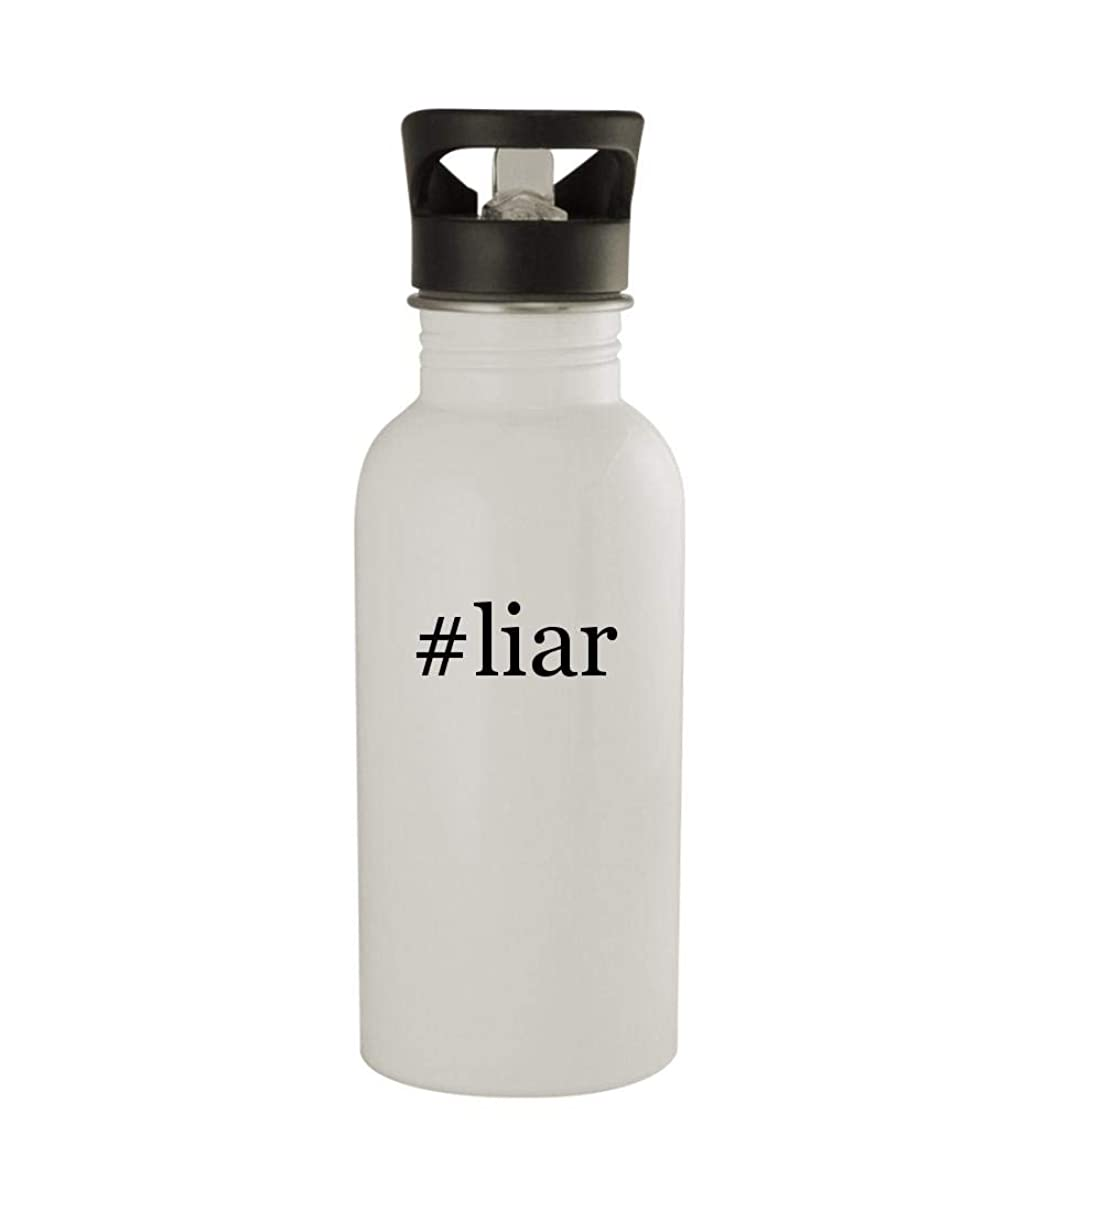 Knick Knack Gifts #liar - 20oz Sturdy Hashtag Stainless Steel Water Bottle